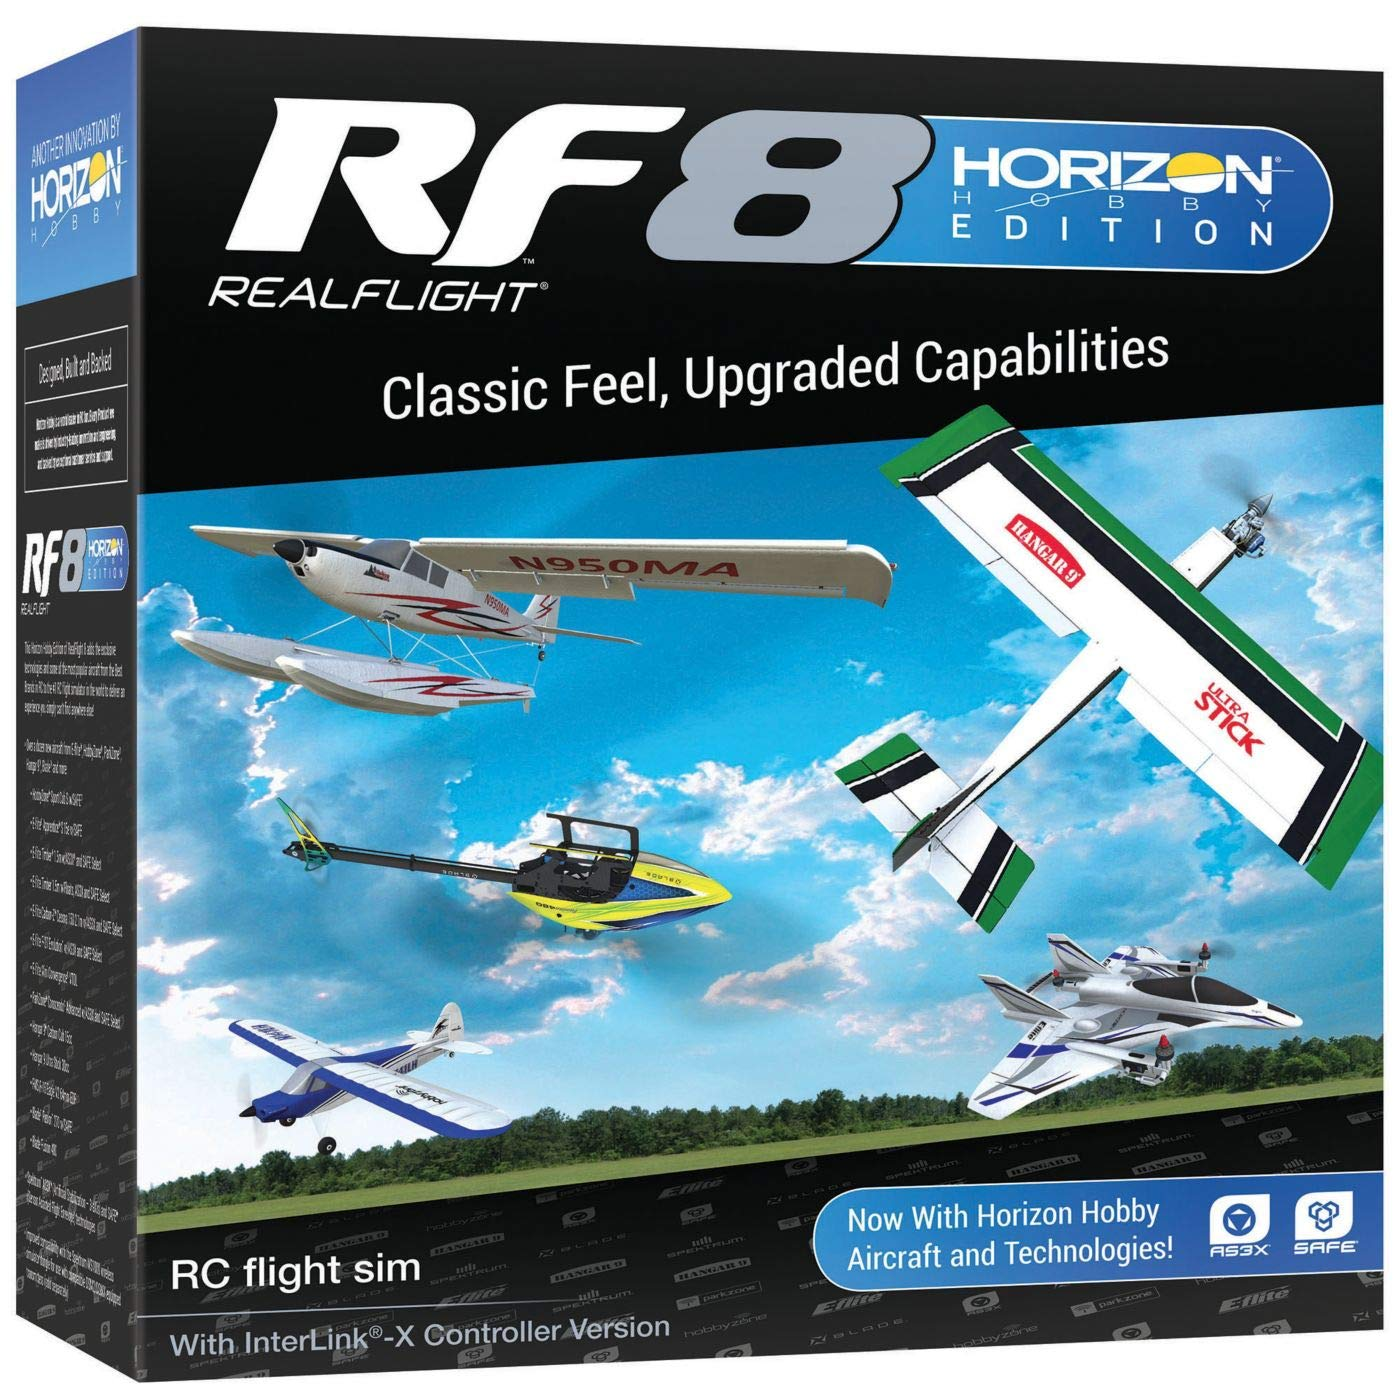 RealFlight RF8 Horizon Hobby Edition with Interlink-X Controller, RFL1000 by RealFlight (Image #2)